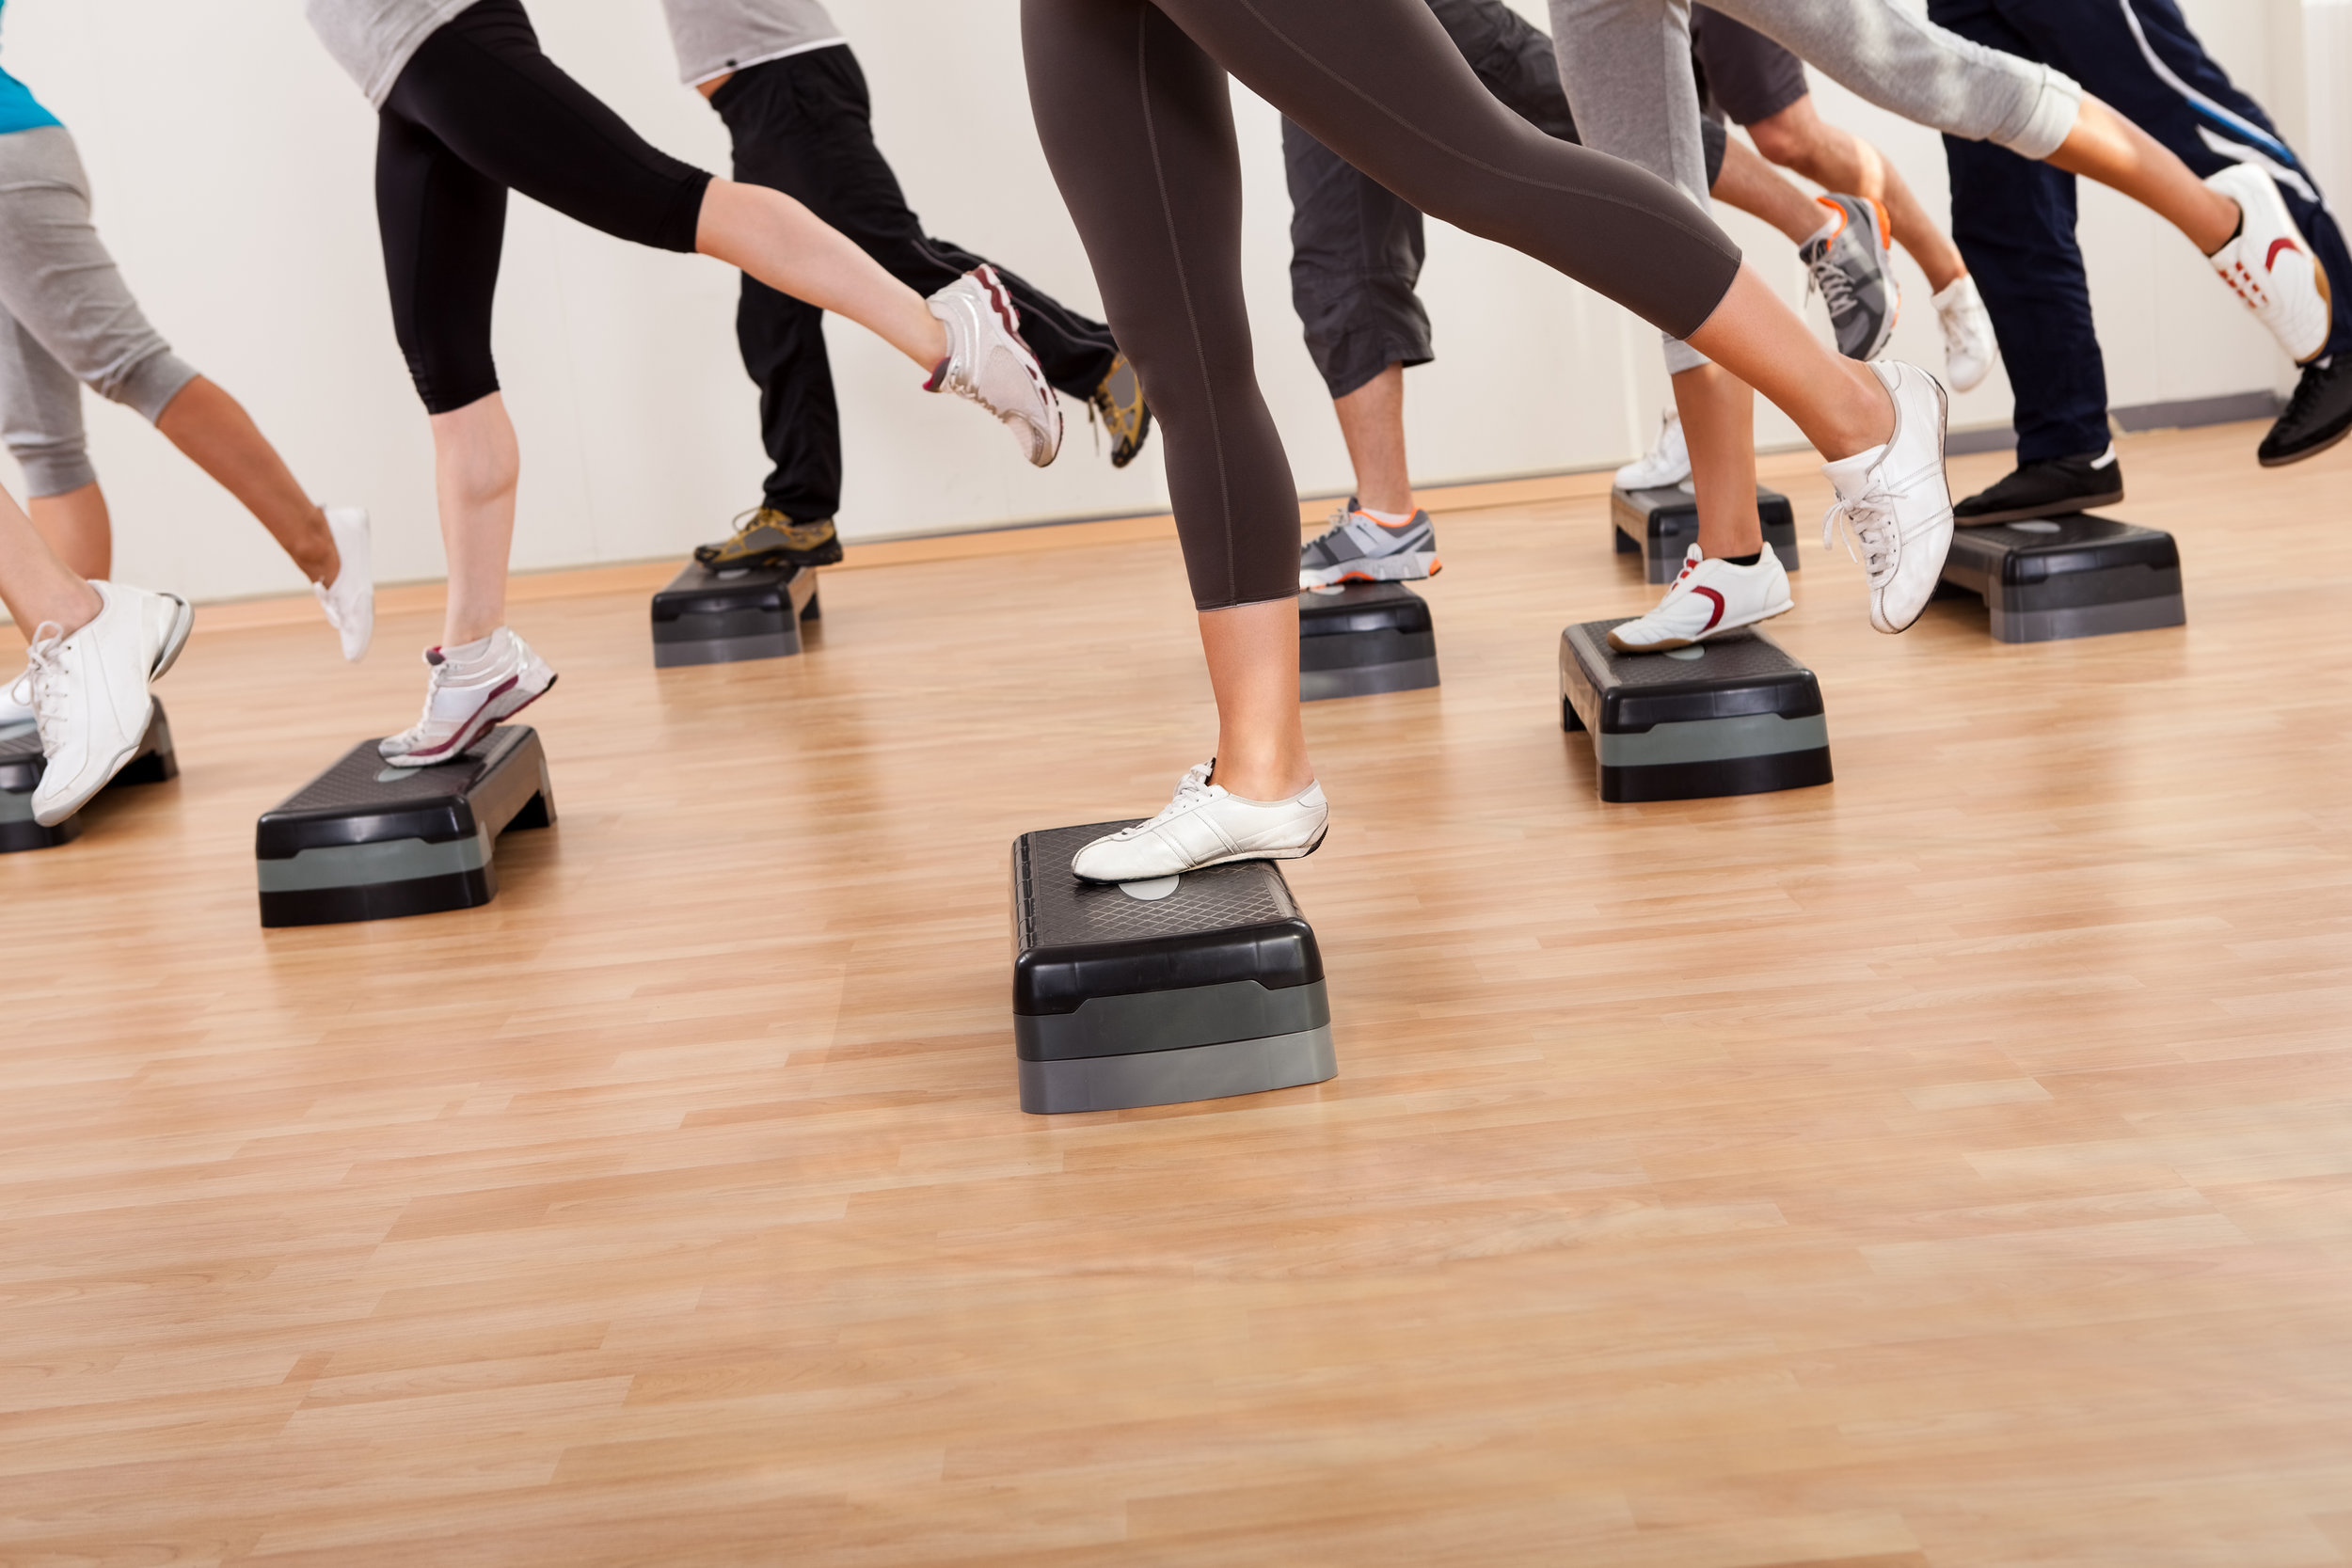 Monthly Rates for Unlimited Classes: - Individual - $45Student - $25 (valid college ID required; must be full-time, age 16-25)Senior - $30Family - $653-Day Trial Pass - $10Drop in Class - $5We also participate with Silver Sneakers, Silver and Fit, and other insurance programs. Please call for more information!